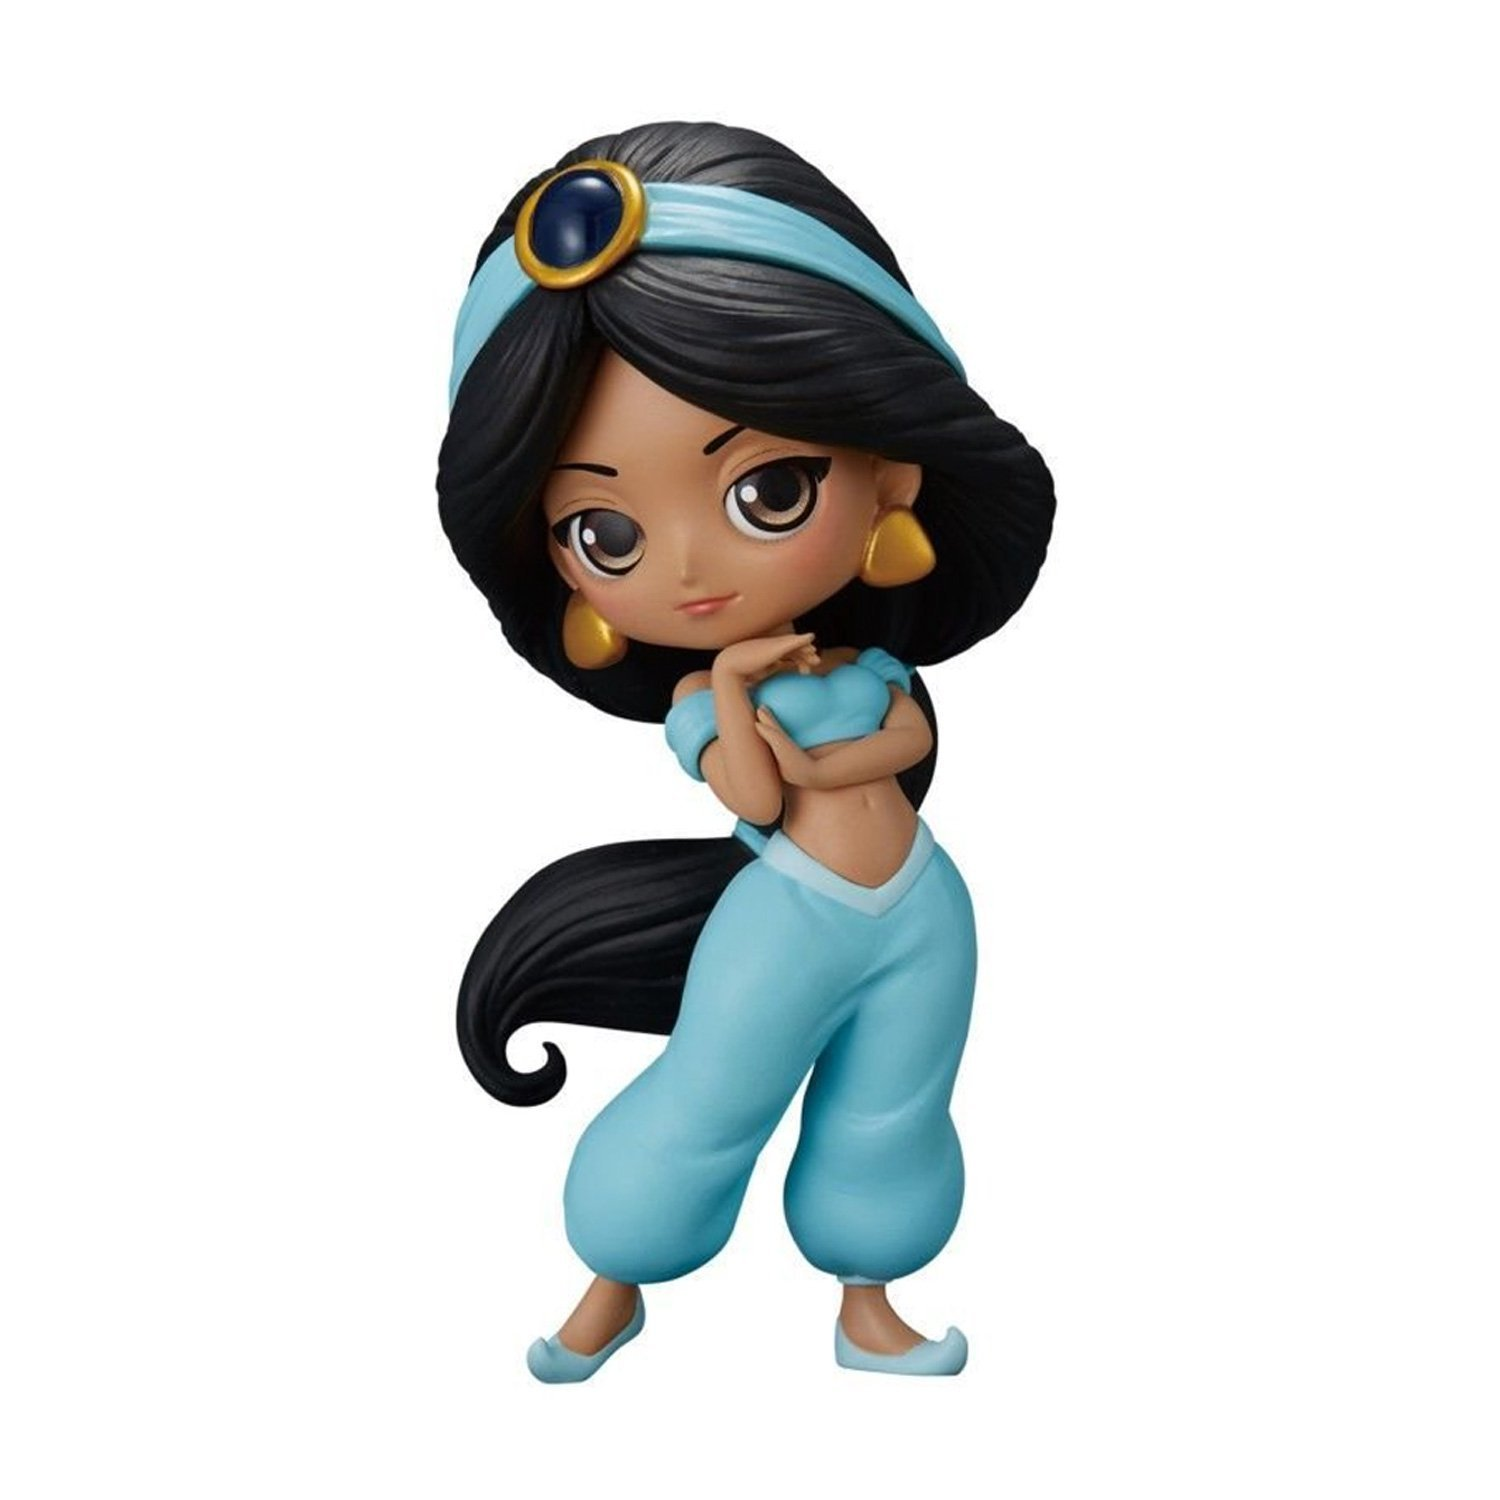 FIGURINE de Collection JASMINE Aladdin 14cm NORMAL COLOR Version - Serie QPOSKET Banpresto DISNEY Characters DISNEY Banpresto